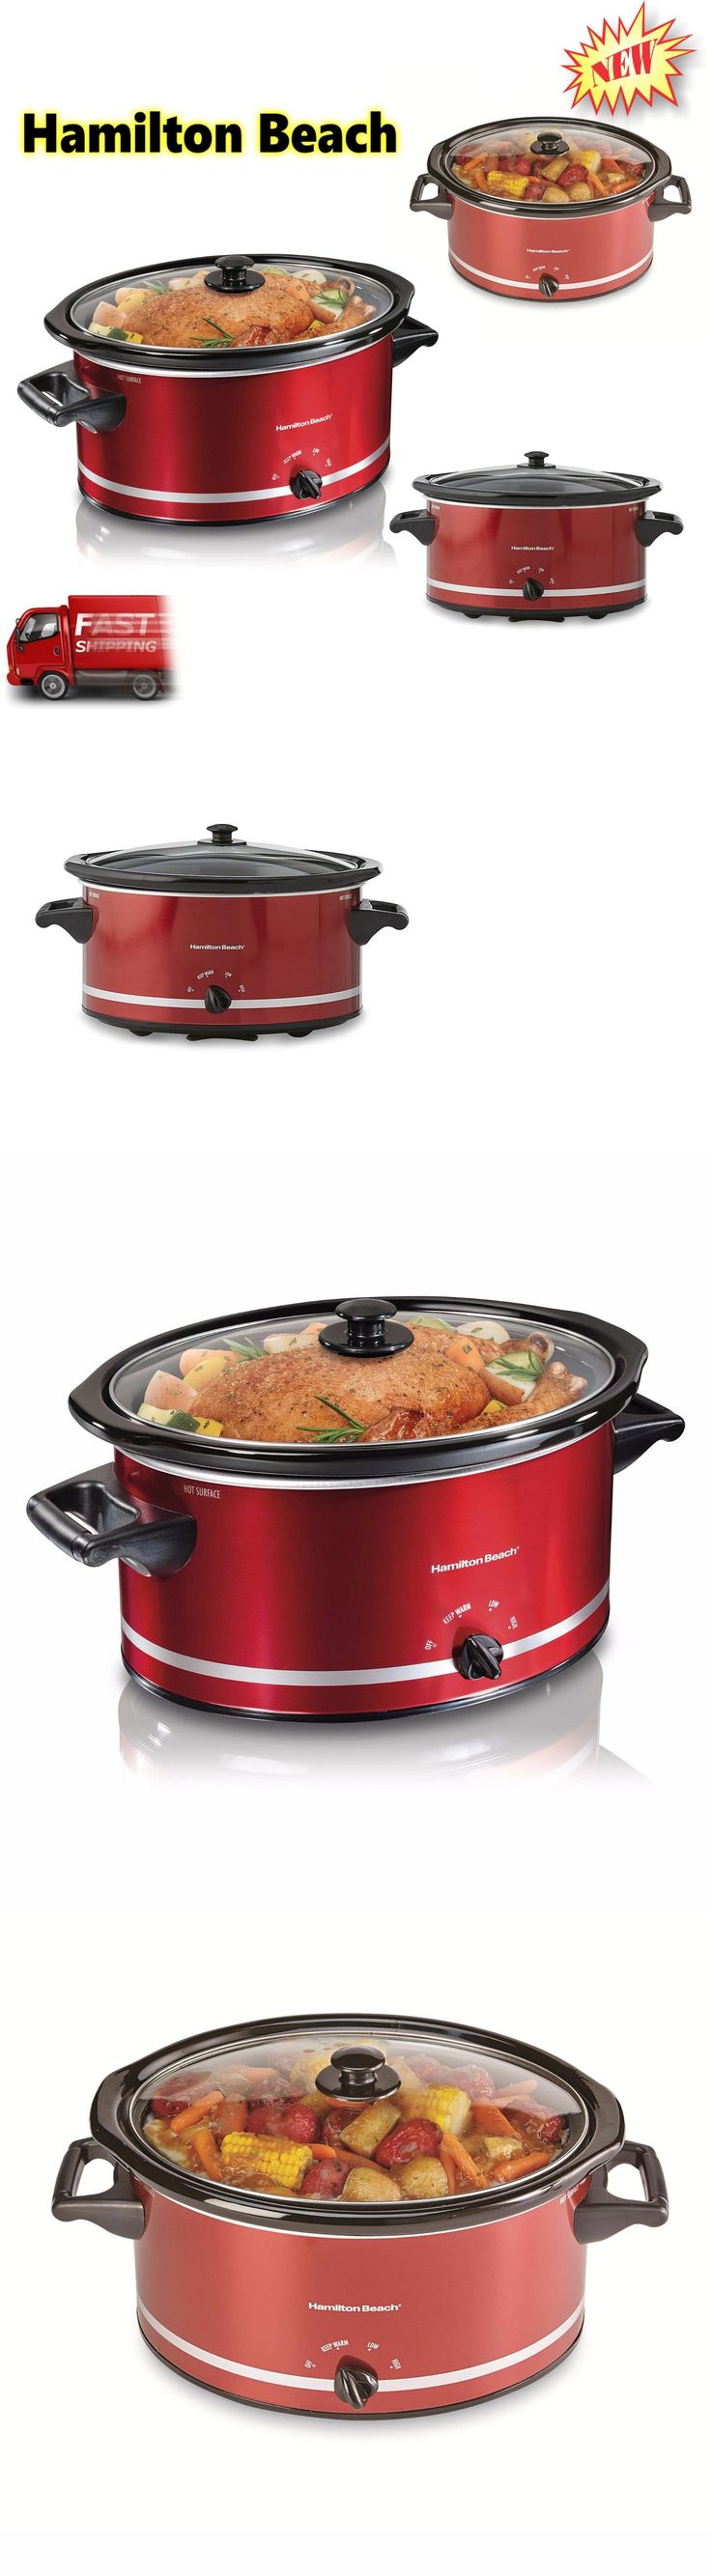 appliances: New Hamilton Beach Slow Cooker Large 8 Quart Red Oval Crockpot Kitchen Cooking BUY IT NOW ONLY: $32.36